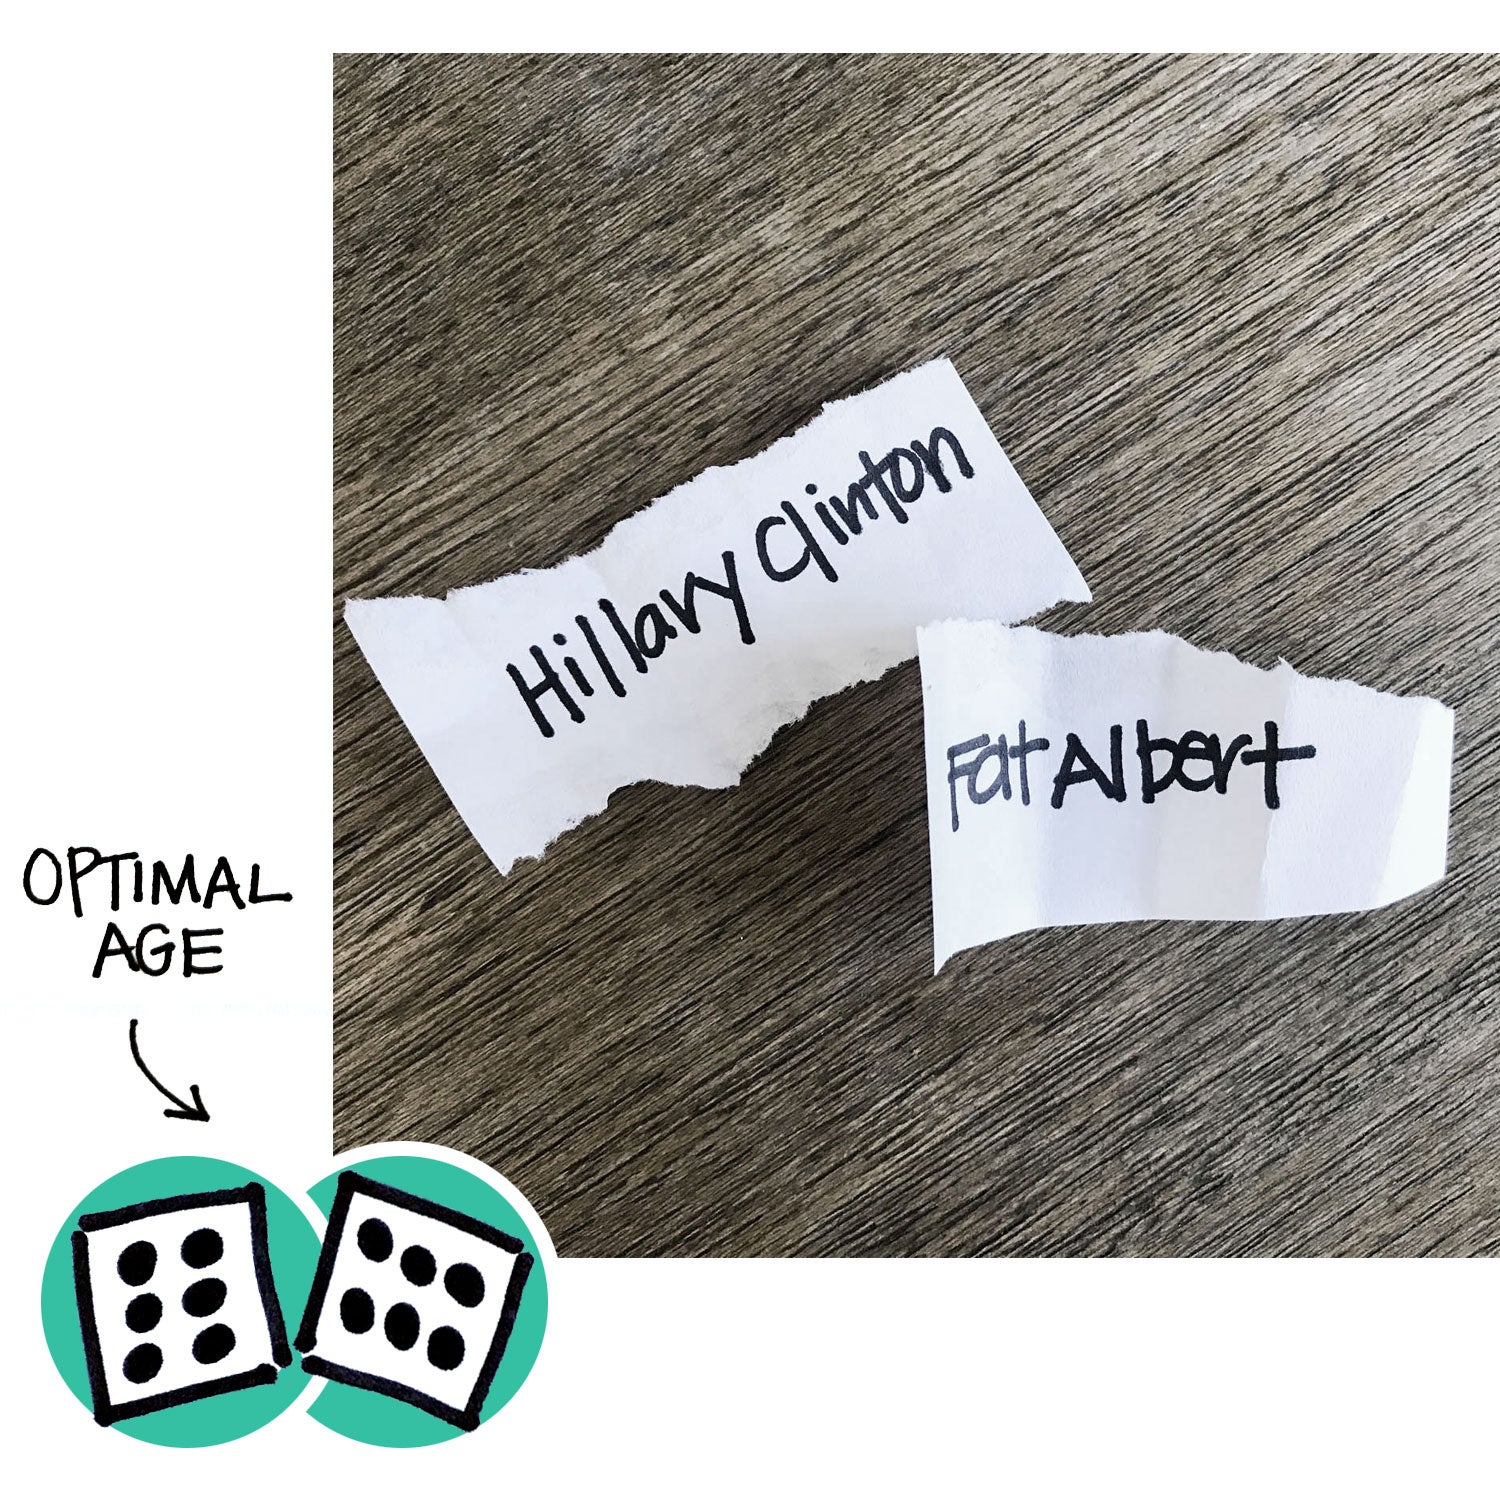 Scraps of paper reading Hillary Clinton and Fat Albert.